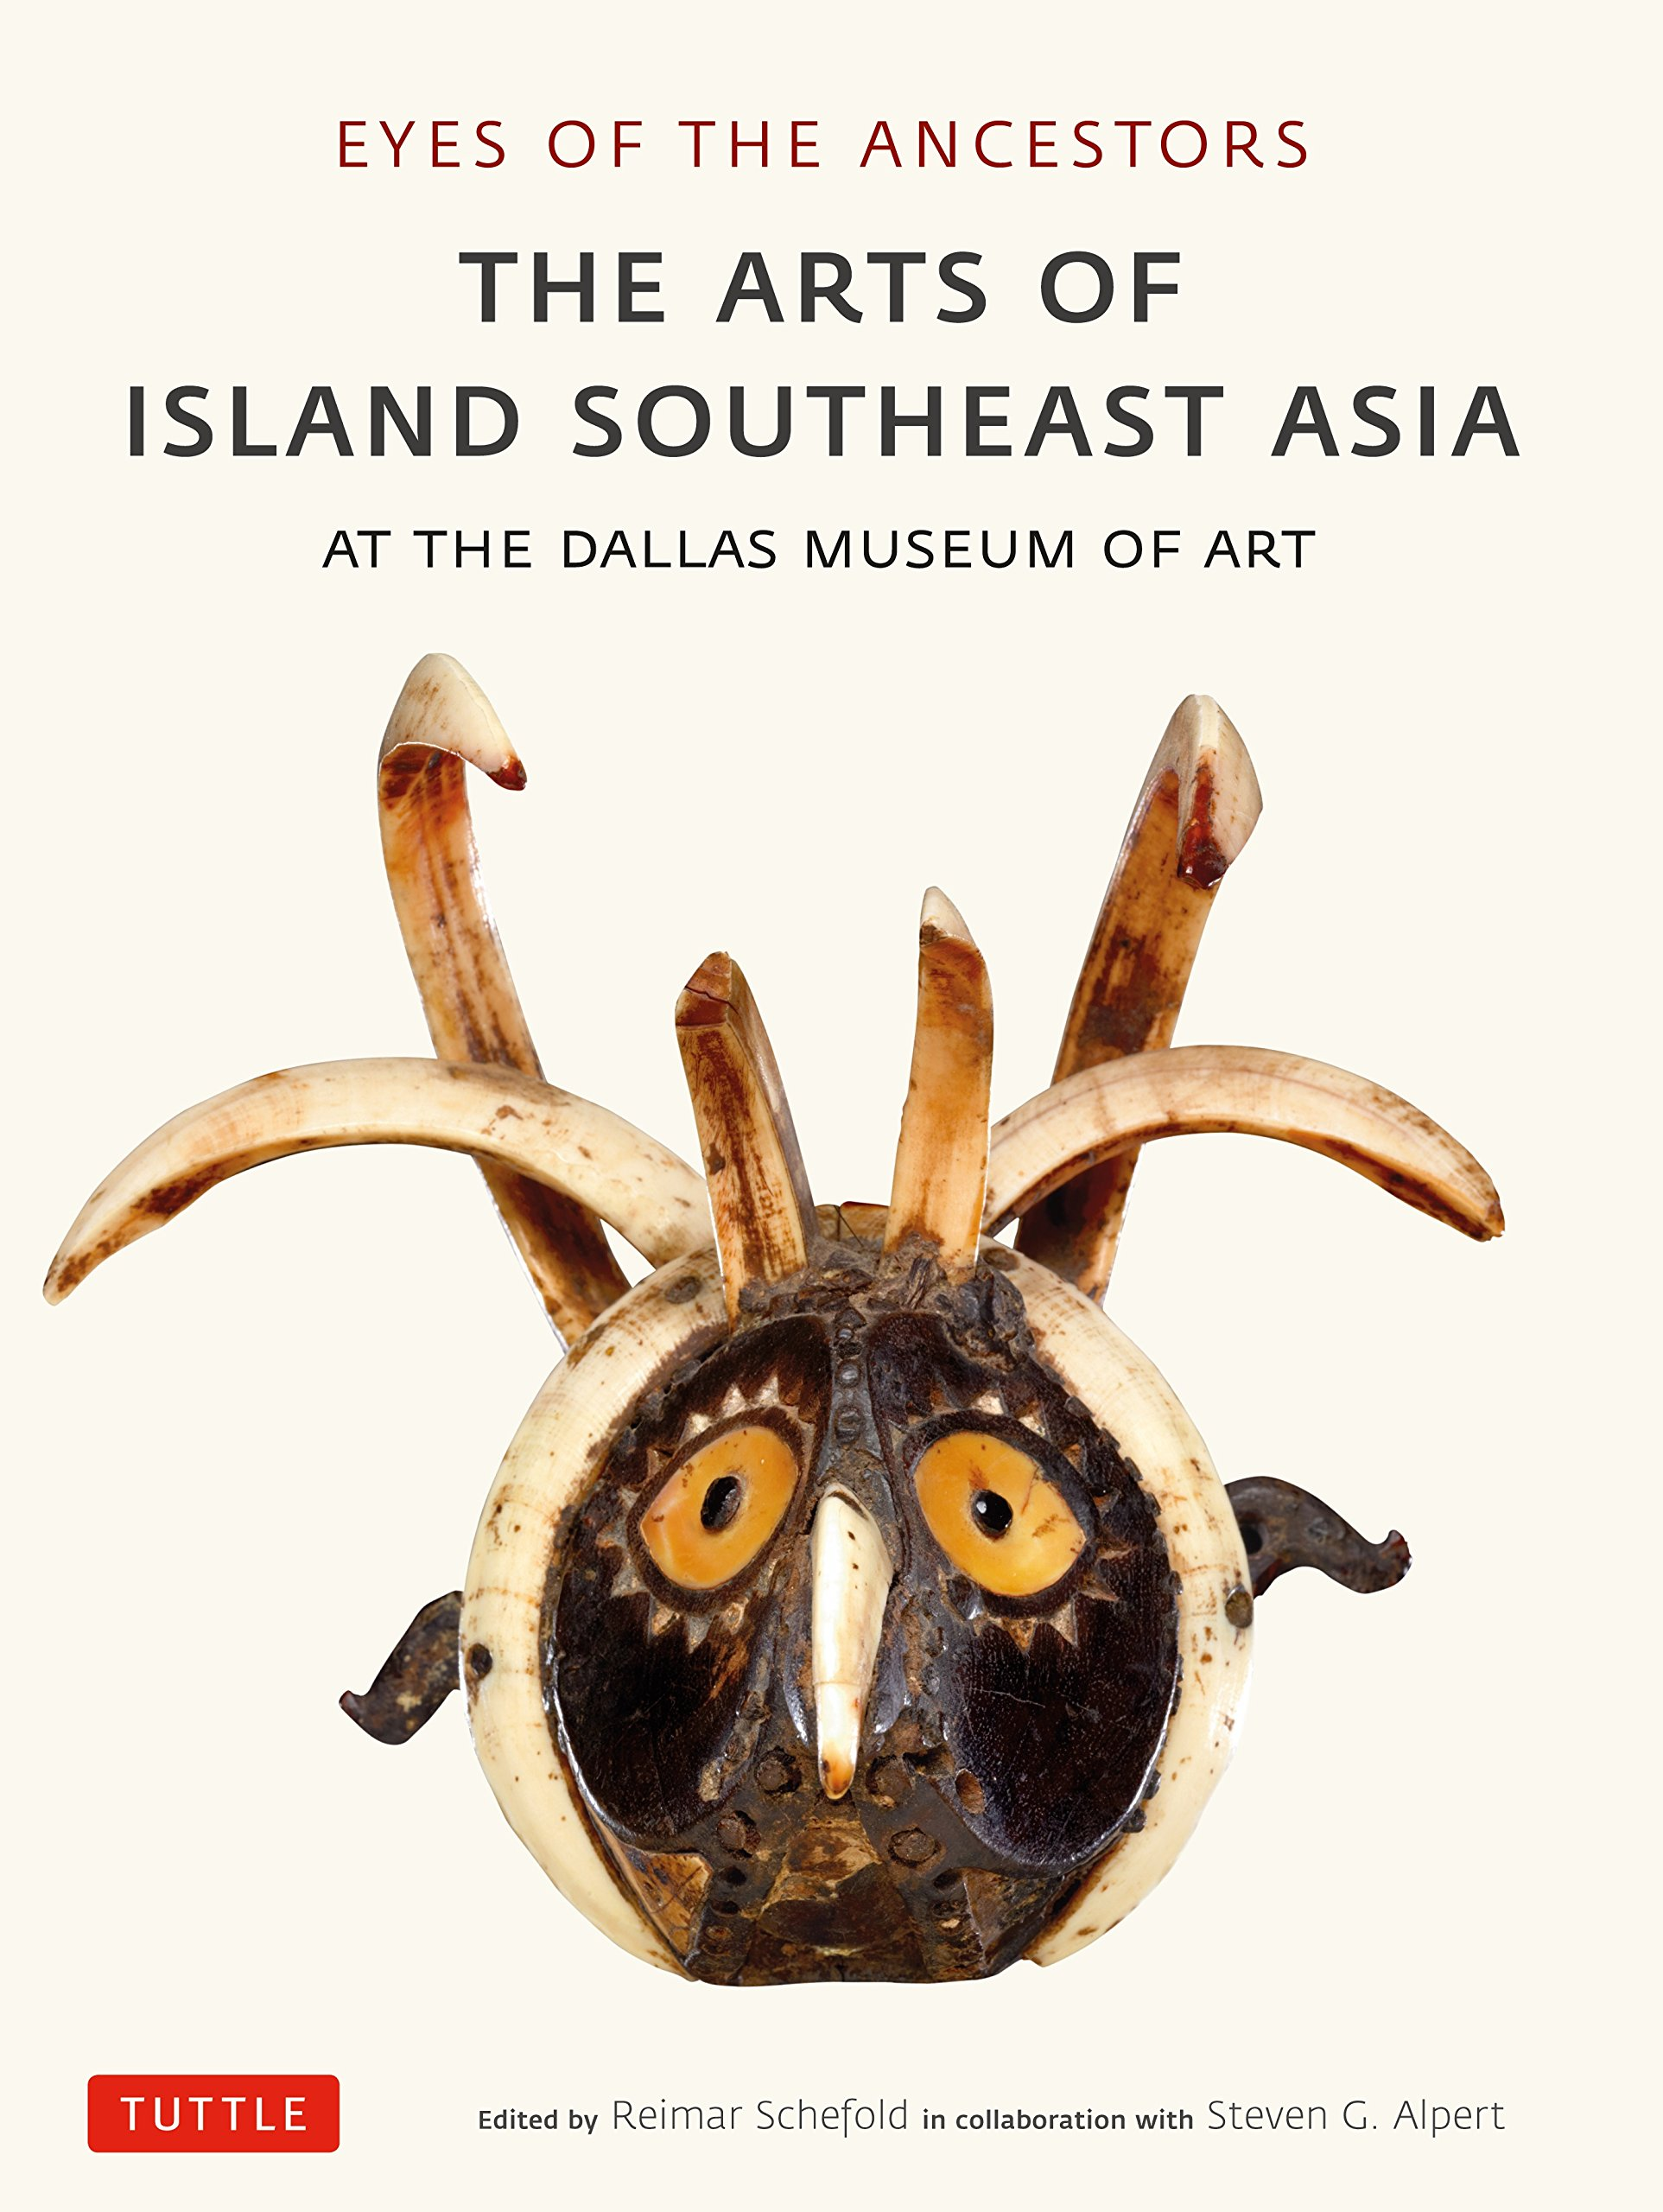 Eyes of the Ancestors The Arts of Island Southeast Asia at the Dallas Museum of Art